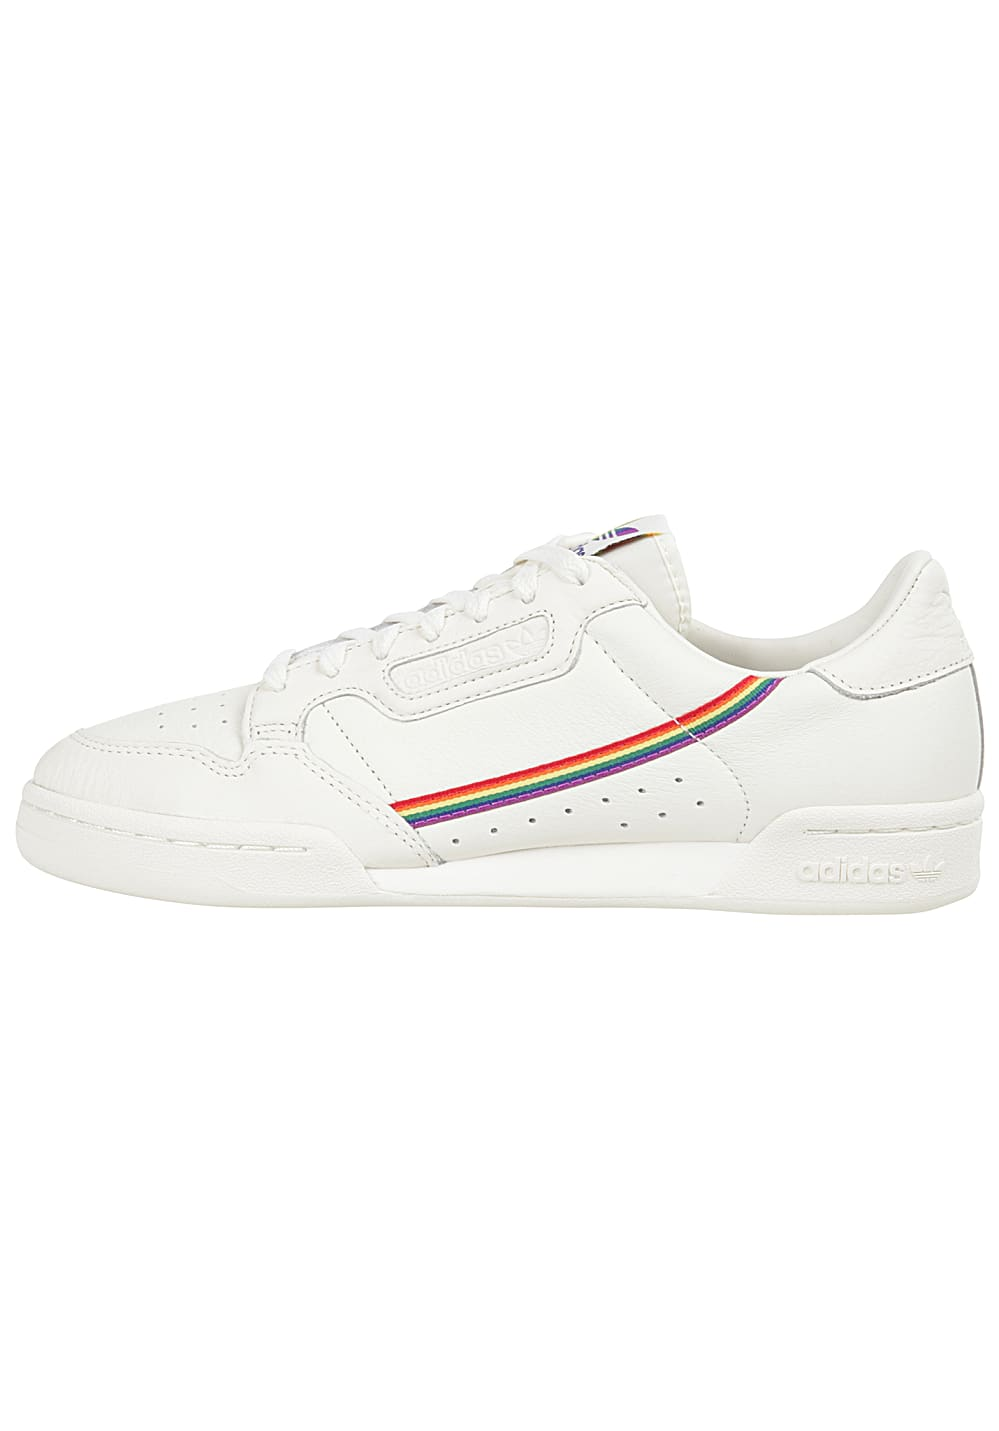 ADIDAS ORIGINALS Continental 80 Pride - Sneakers voor Heren - Wit